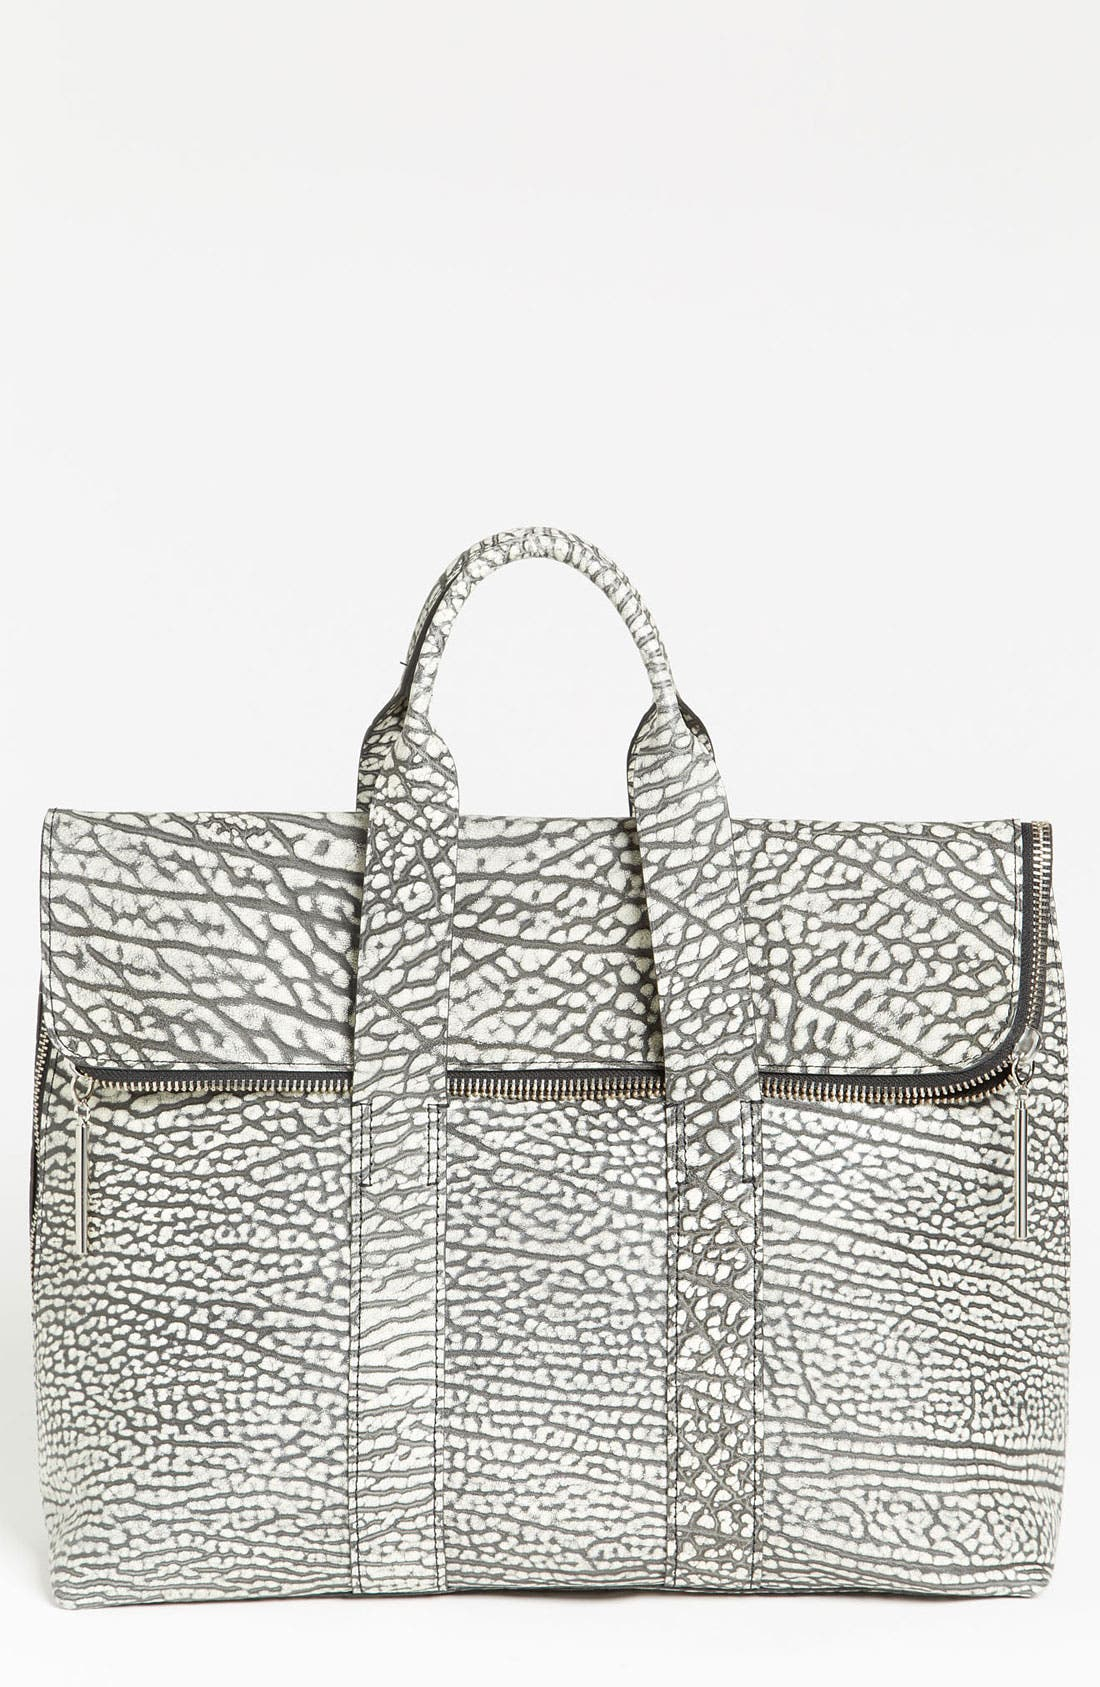 Alternate Image 1 Selected - 3.1 Phillip Lim '31 Hour' Tote